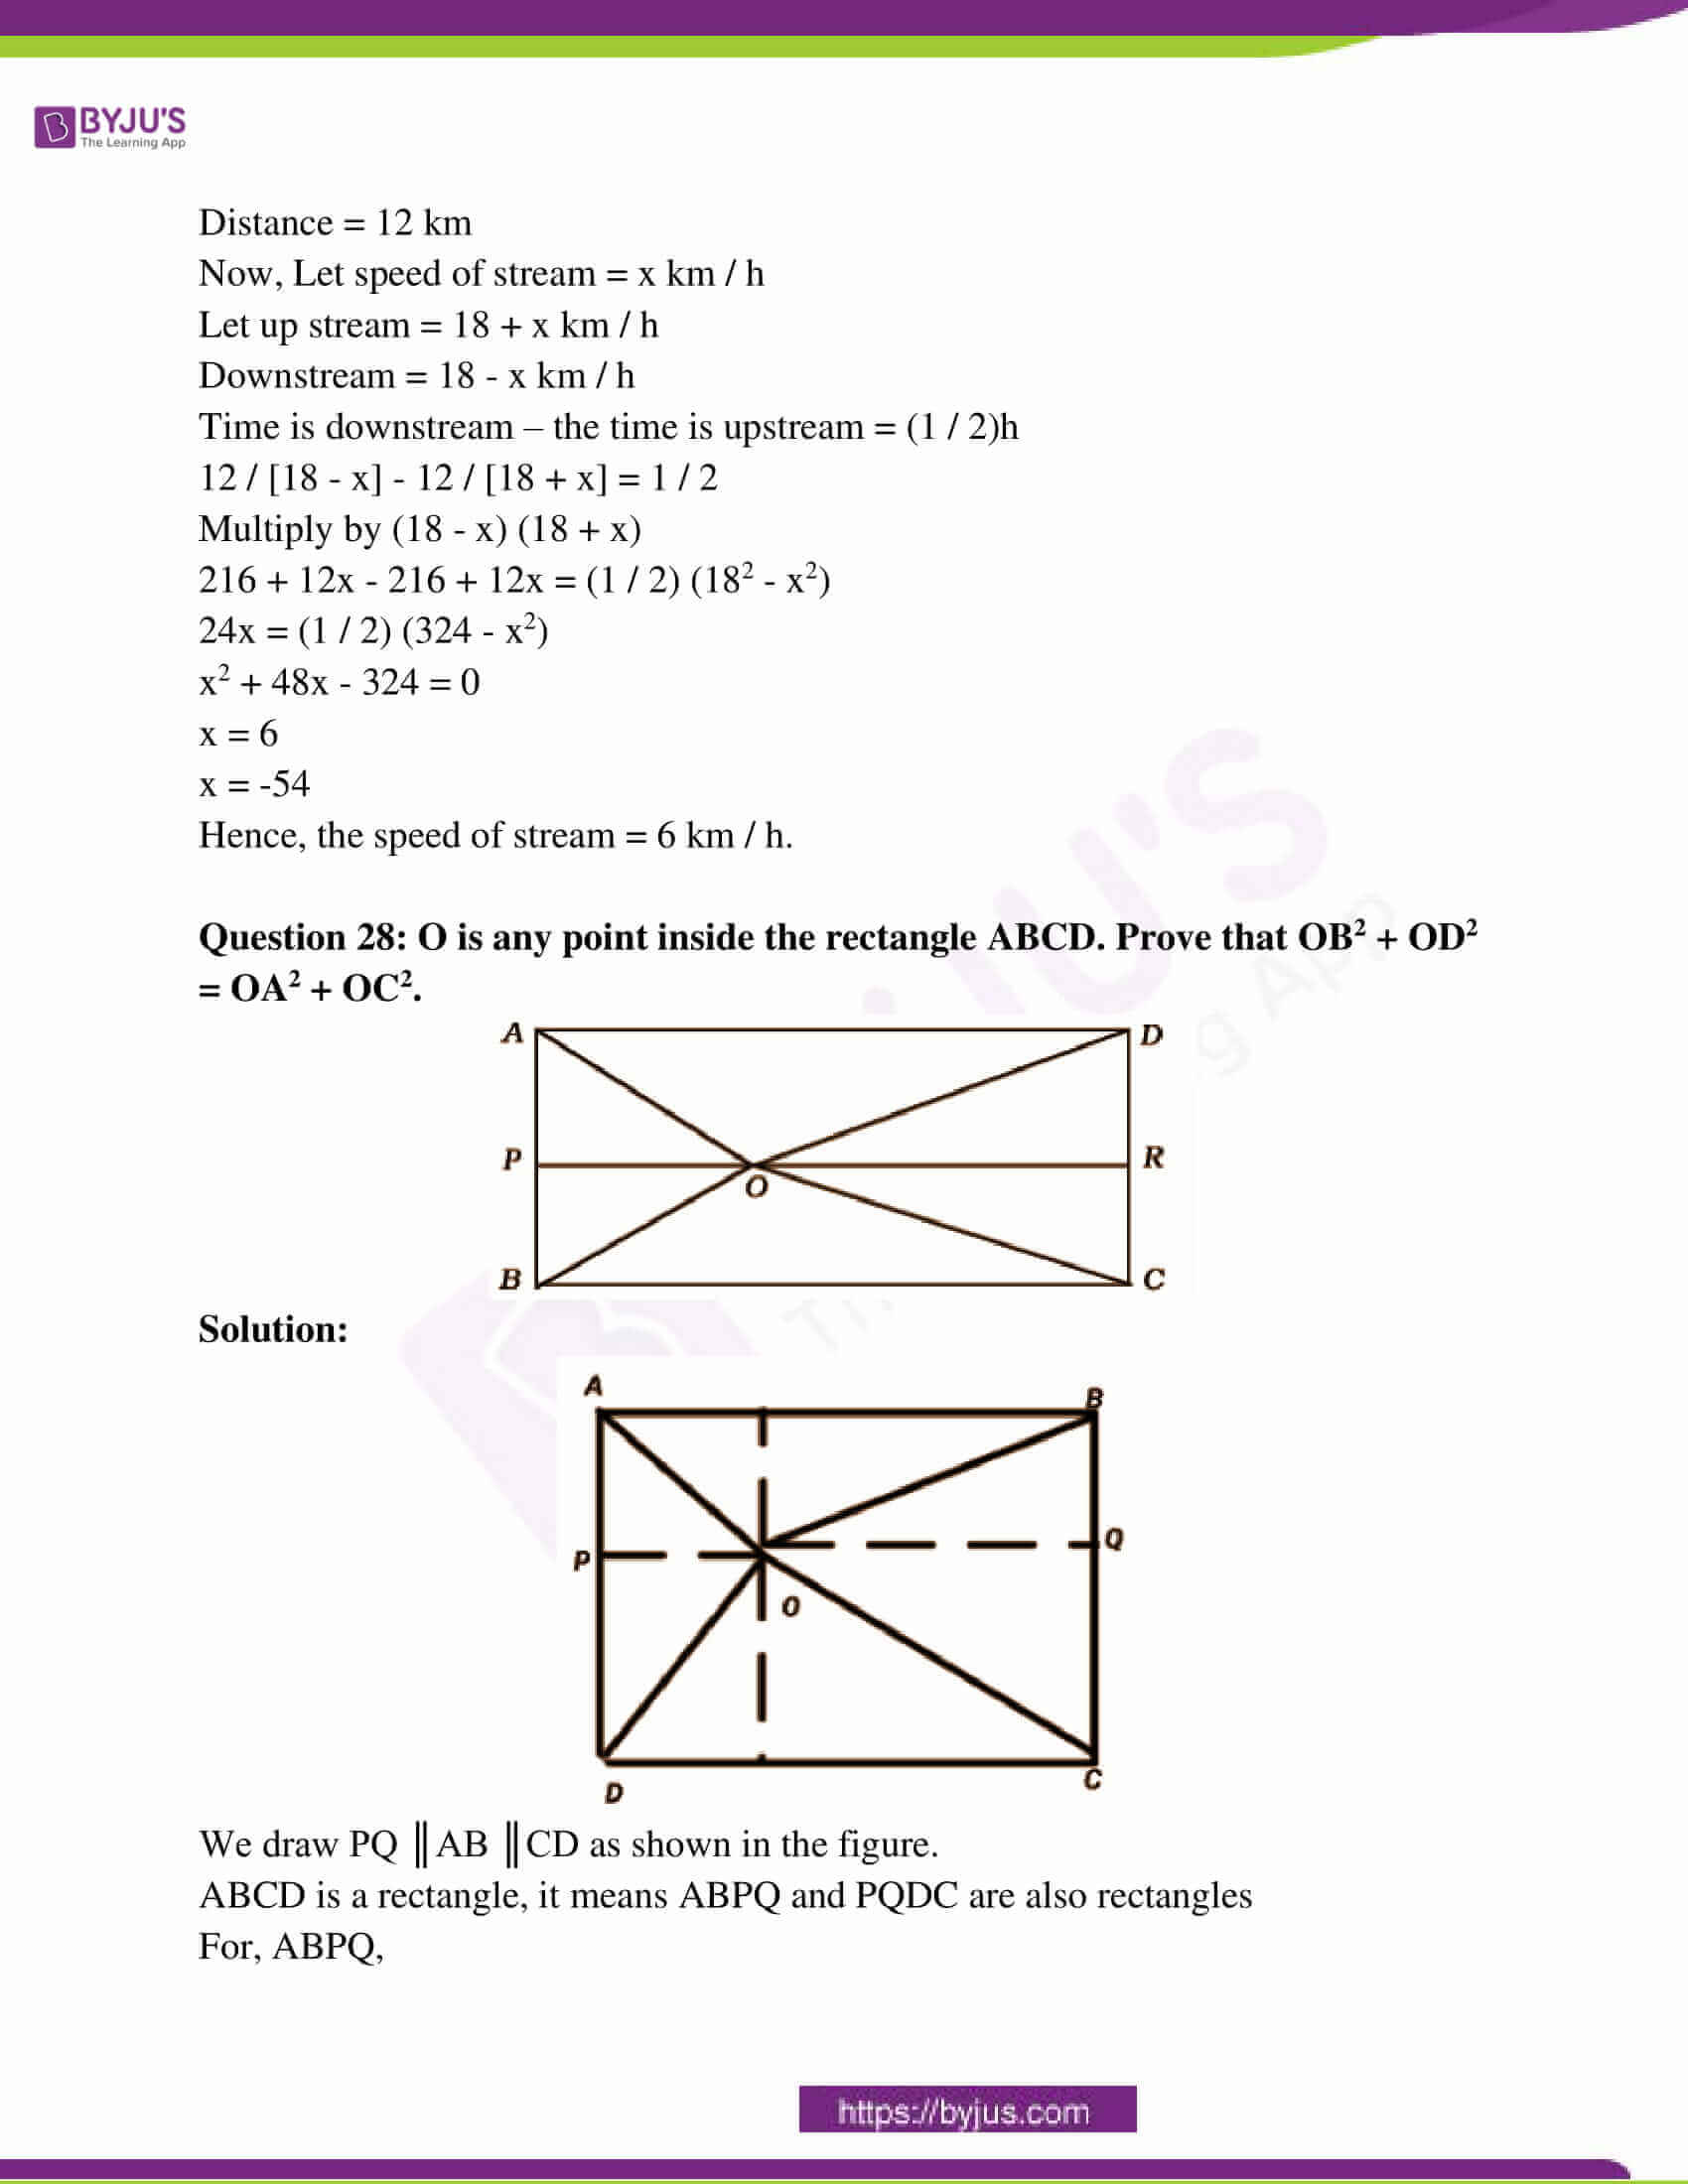 rajasthan board class 10 examination question paper sol march 2015 15